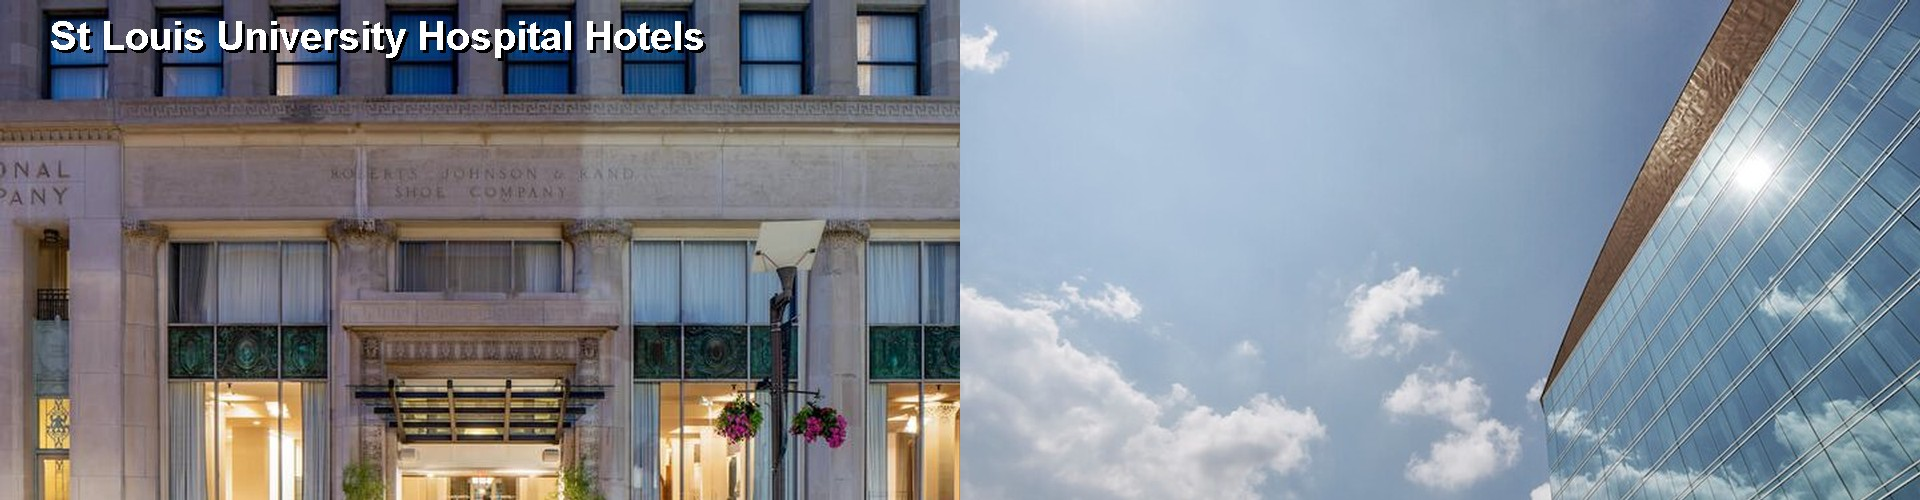 Hotels in St. Louis MO | Quality Inn Airport | St. Louis